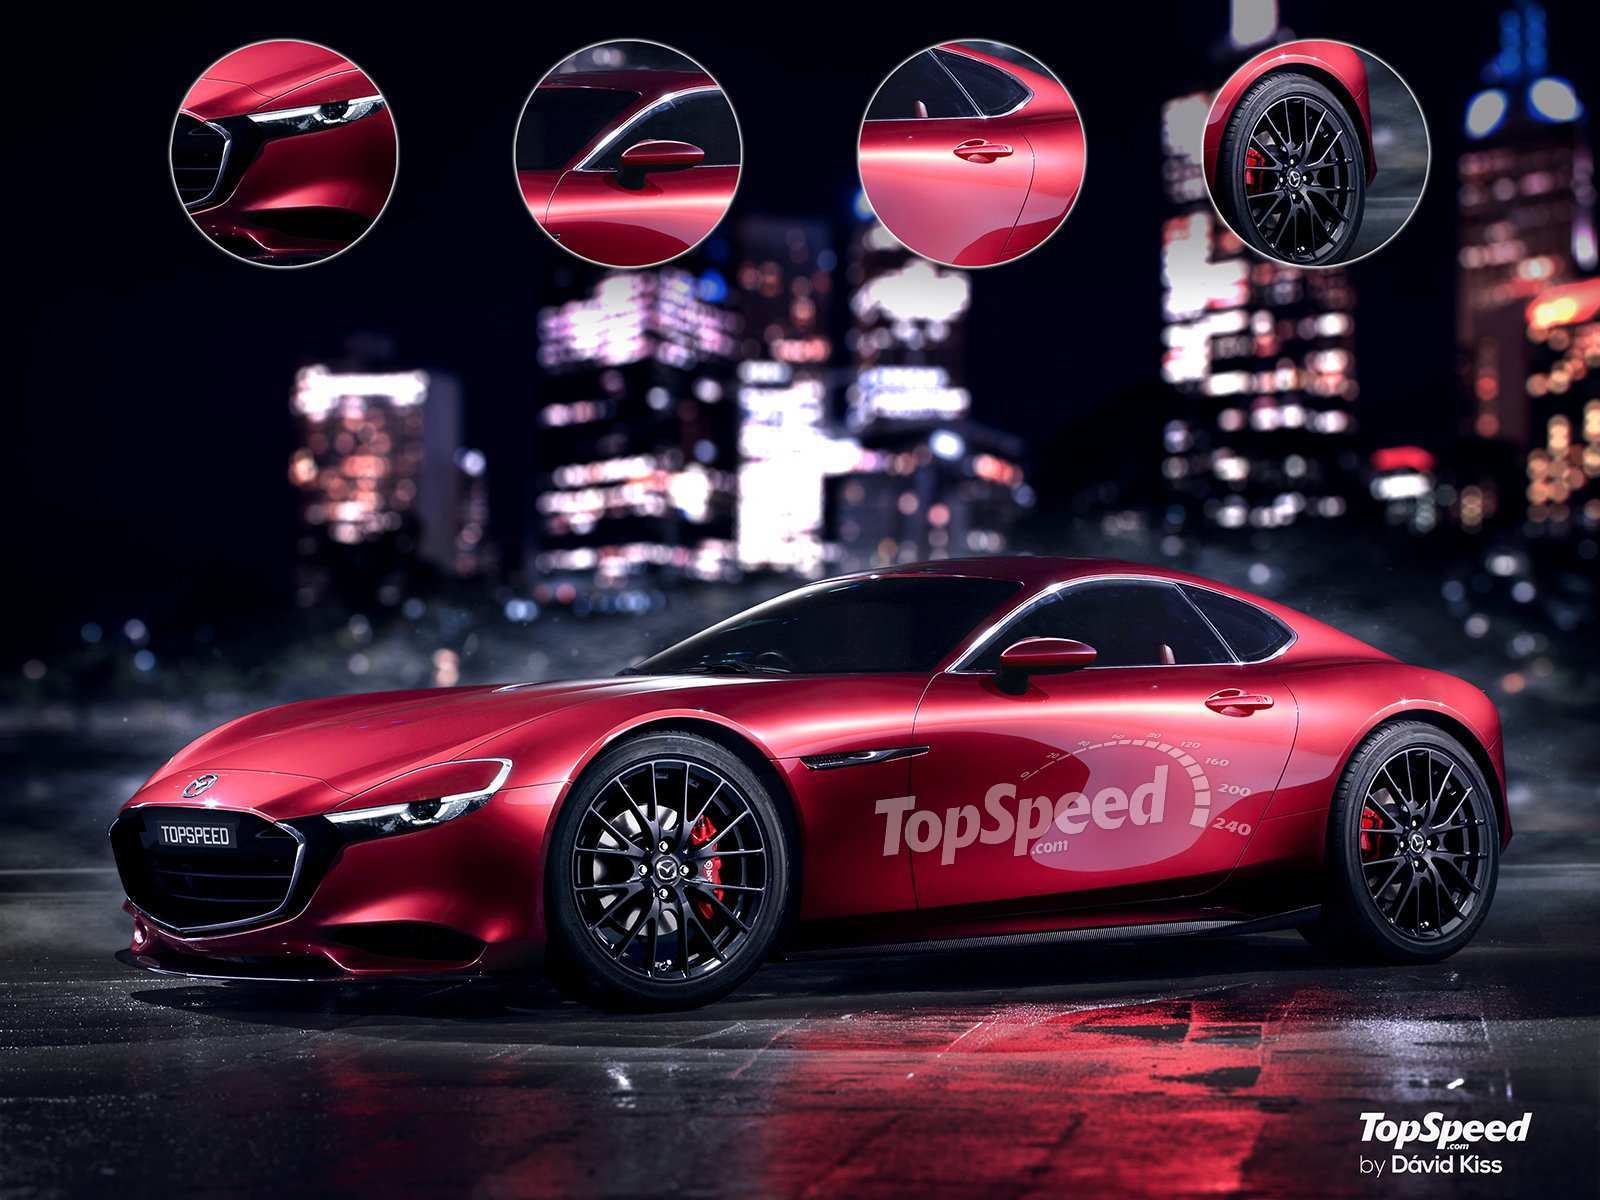 42 Best Review 2020 Mazda RX7s New Concept with 2020 Mazda RX7s